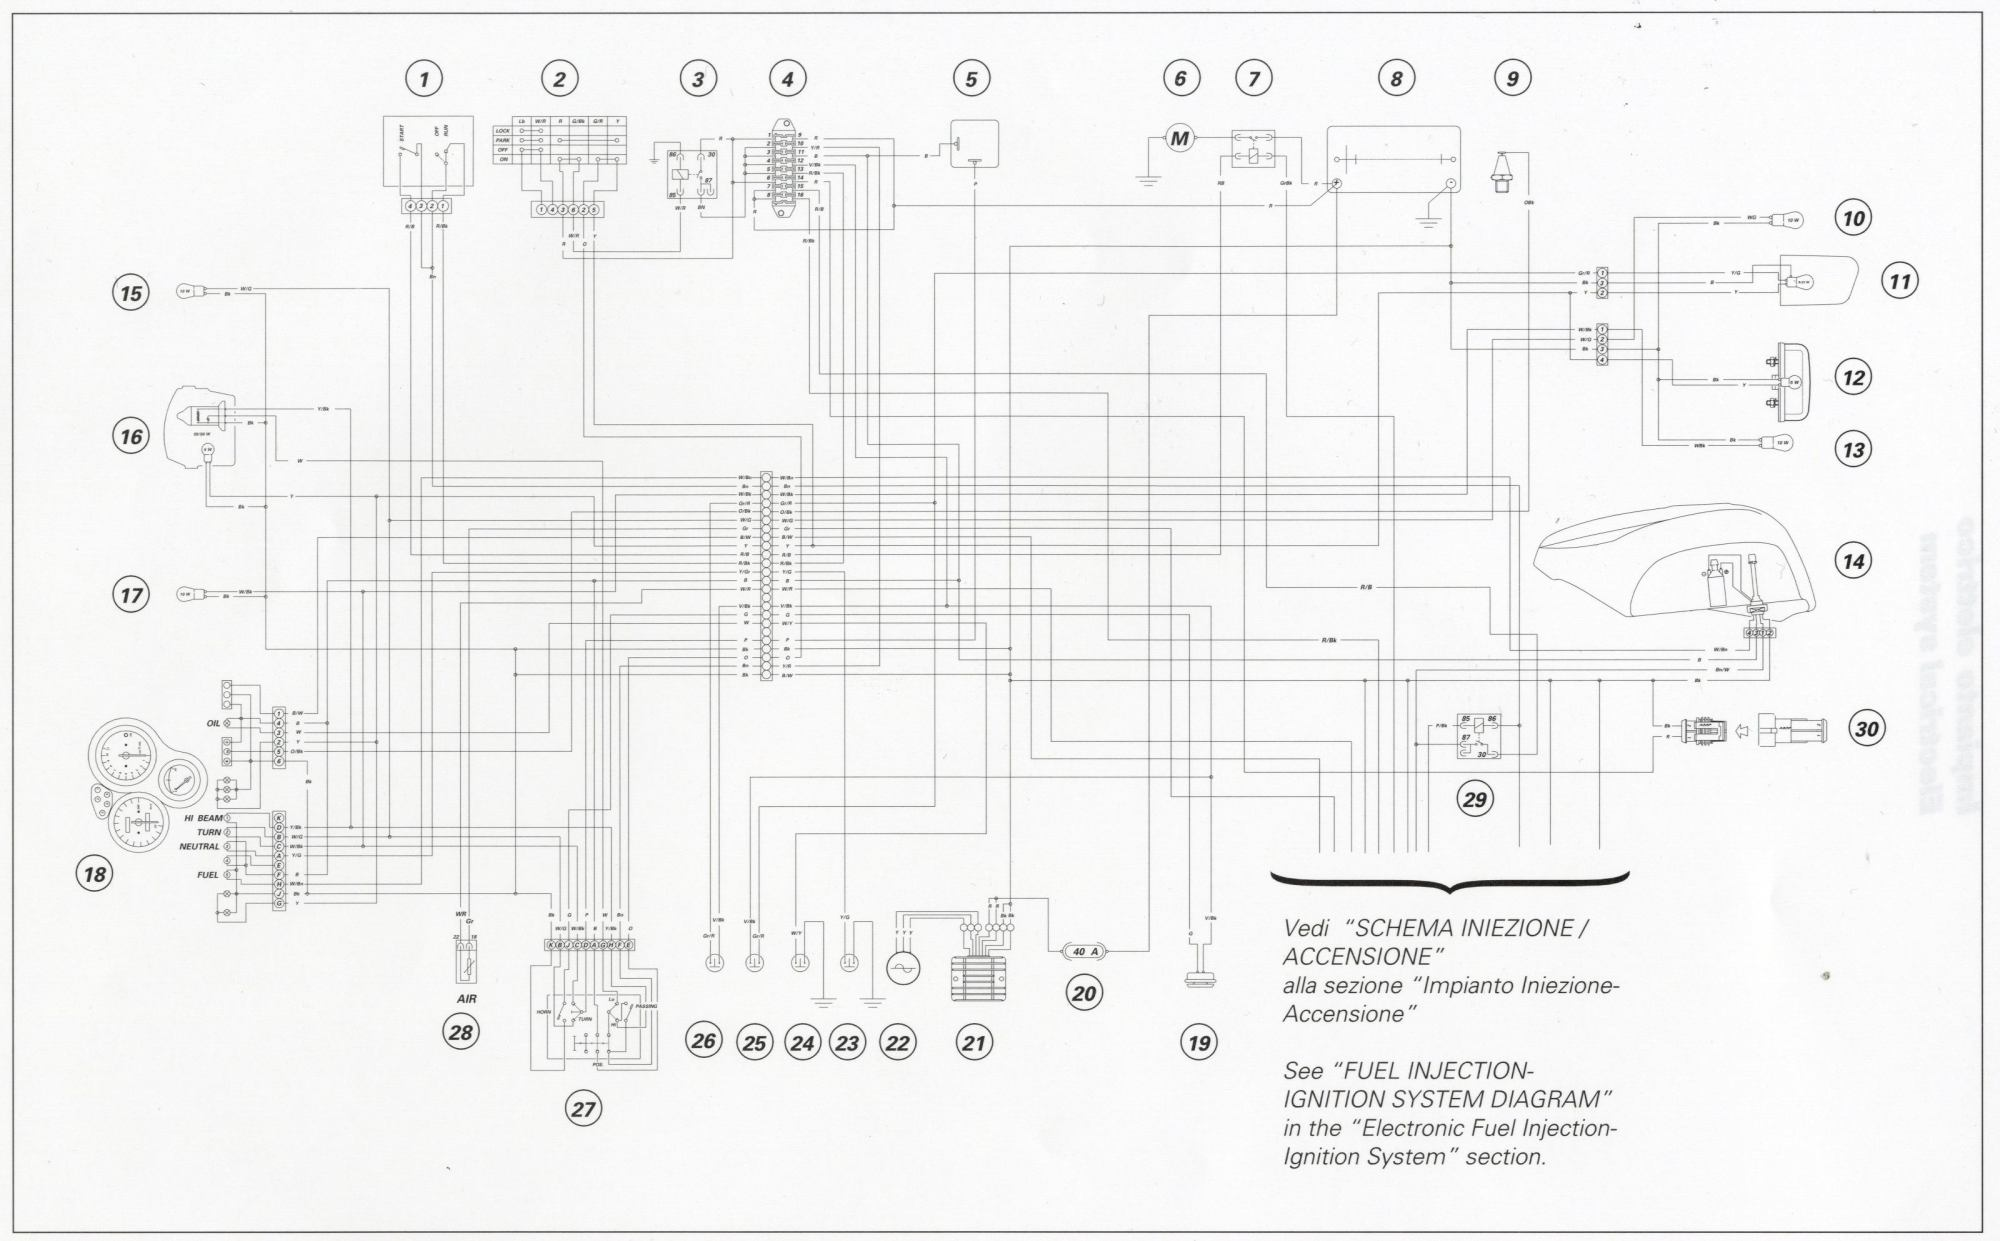 hight resolution of rotax 912 ignition wiring diagram simple wiring schema 1996 seadoo sp engine diagram ducati gt 1000